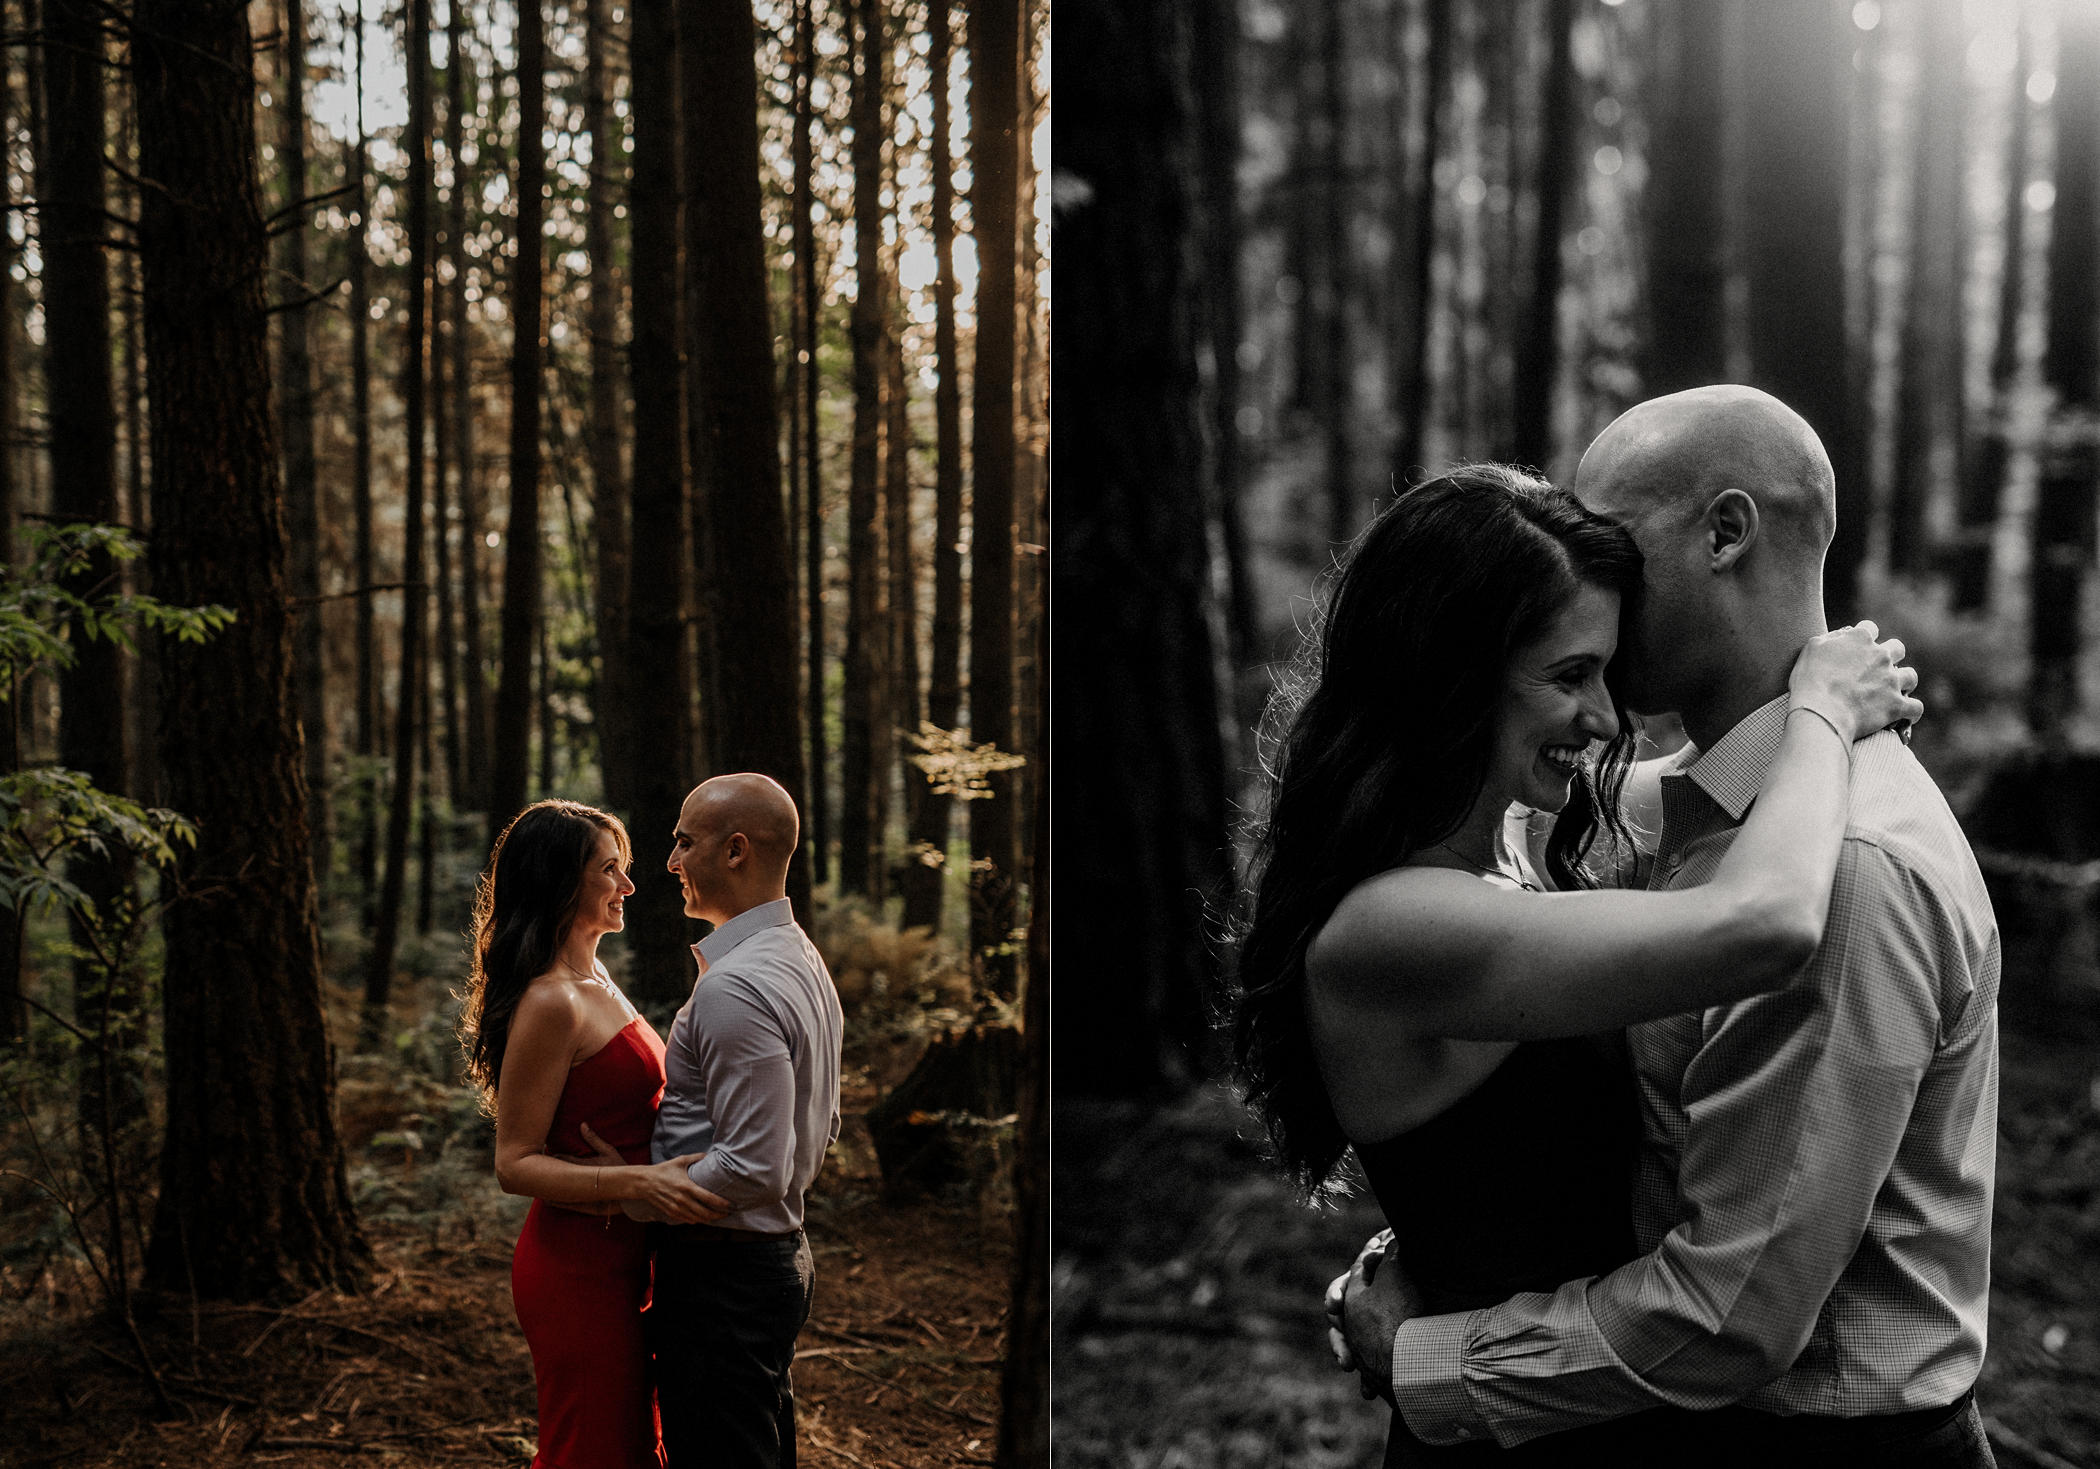 003-kaoverii-silva-AJ-prewedding-vancouver-photography-blog.png